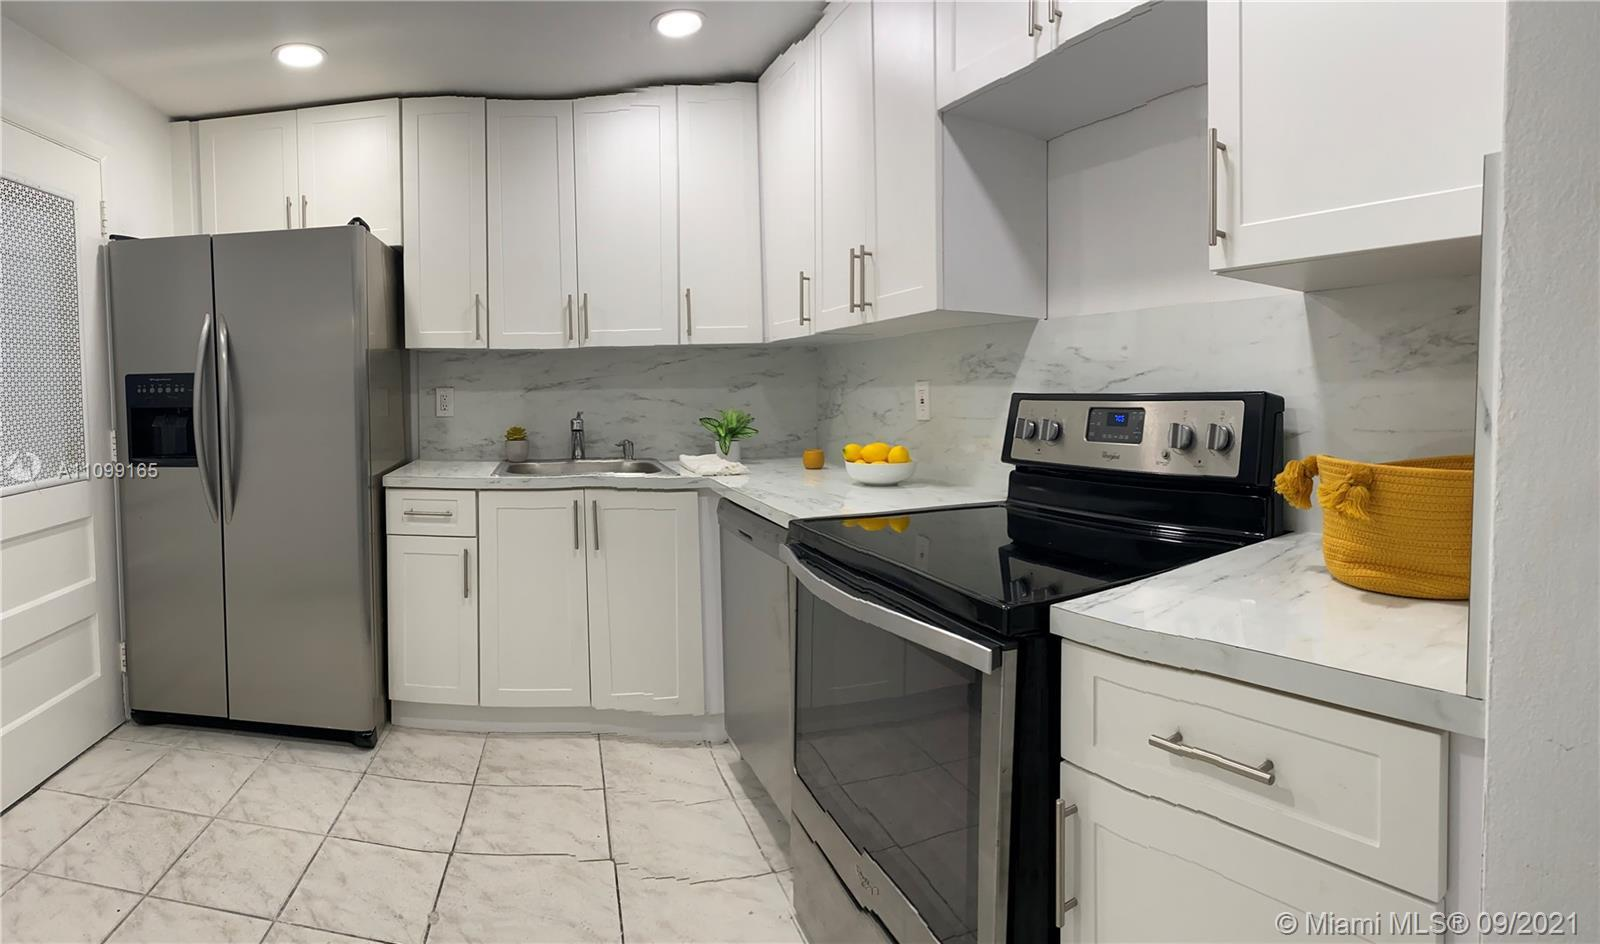 BRAND NEW KITCHEN, Corner apartment with Balcony, Assigned parking spot, ok to rent! Walking distanc